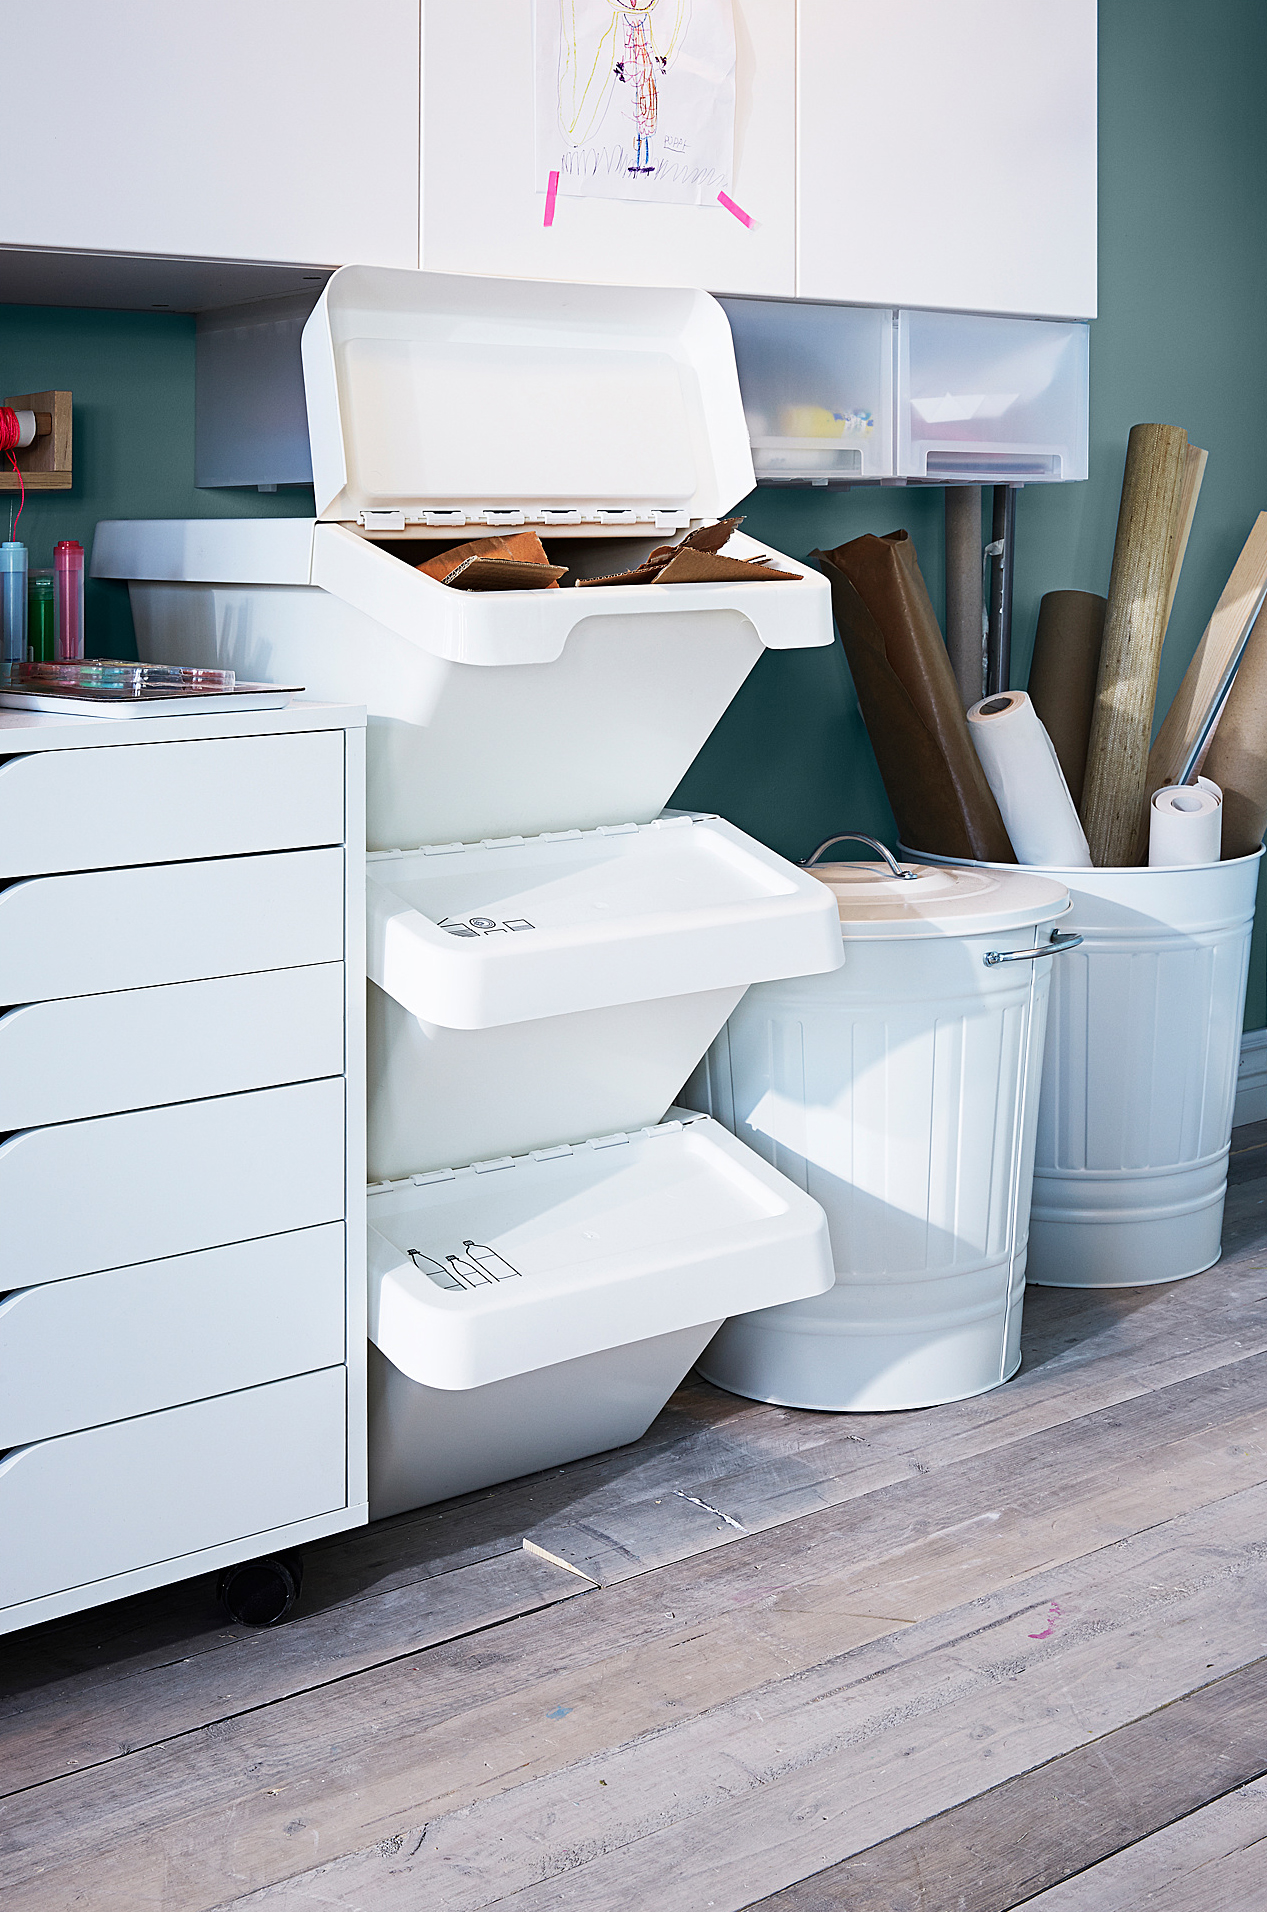 IKEA Recycling Bins and Green Initiatives | Apartment Therapy